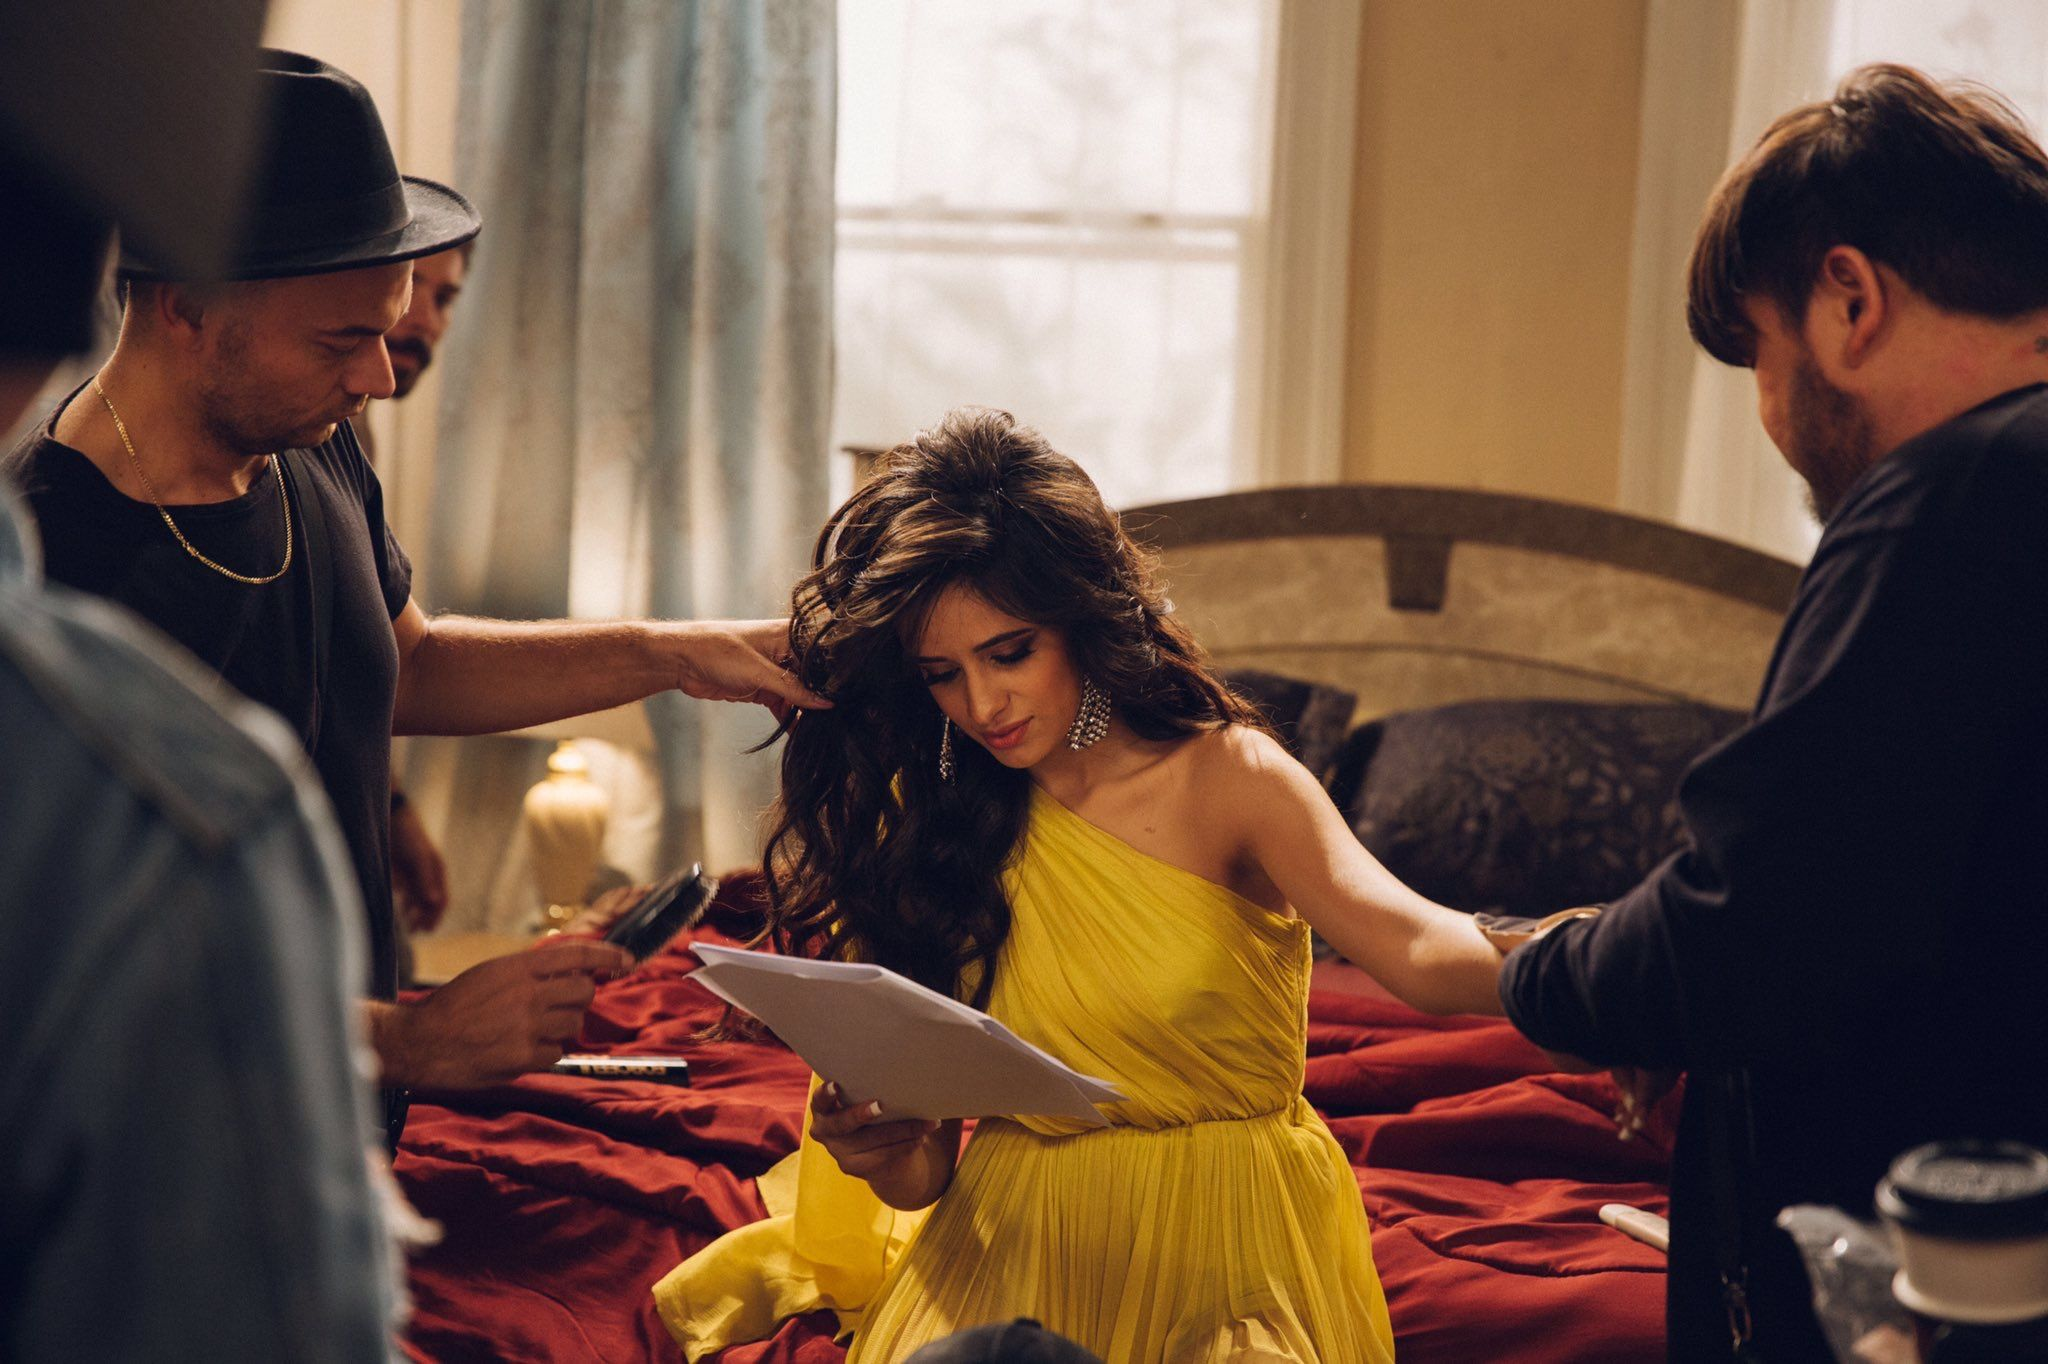 Camila Cabello behind the scenes of the Havana Music Video